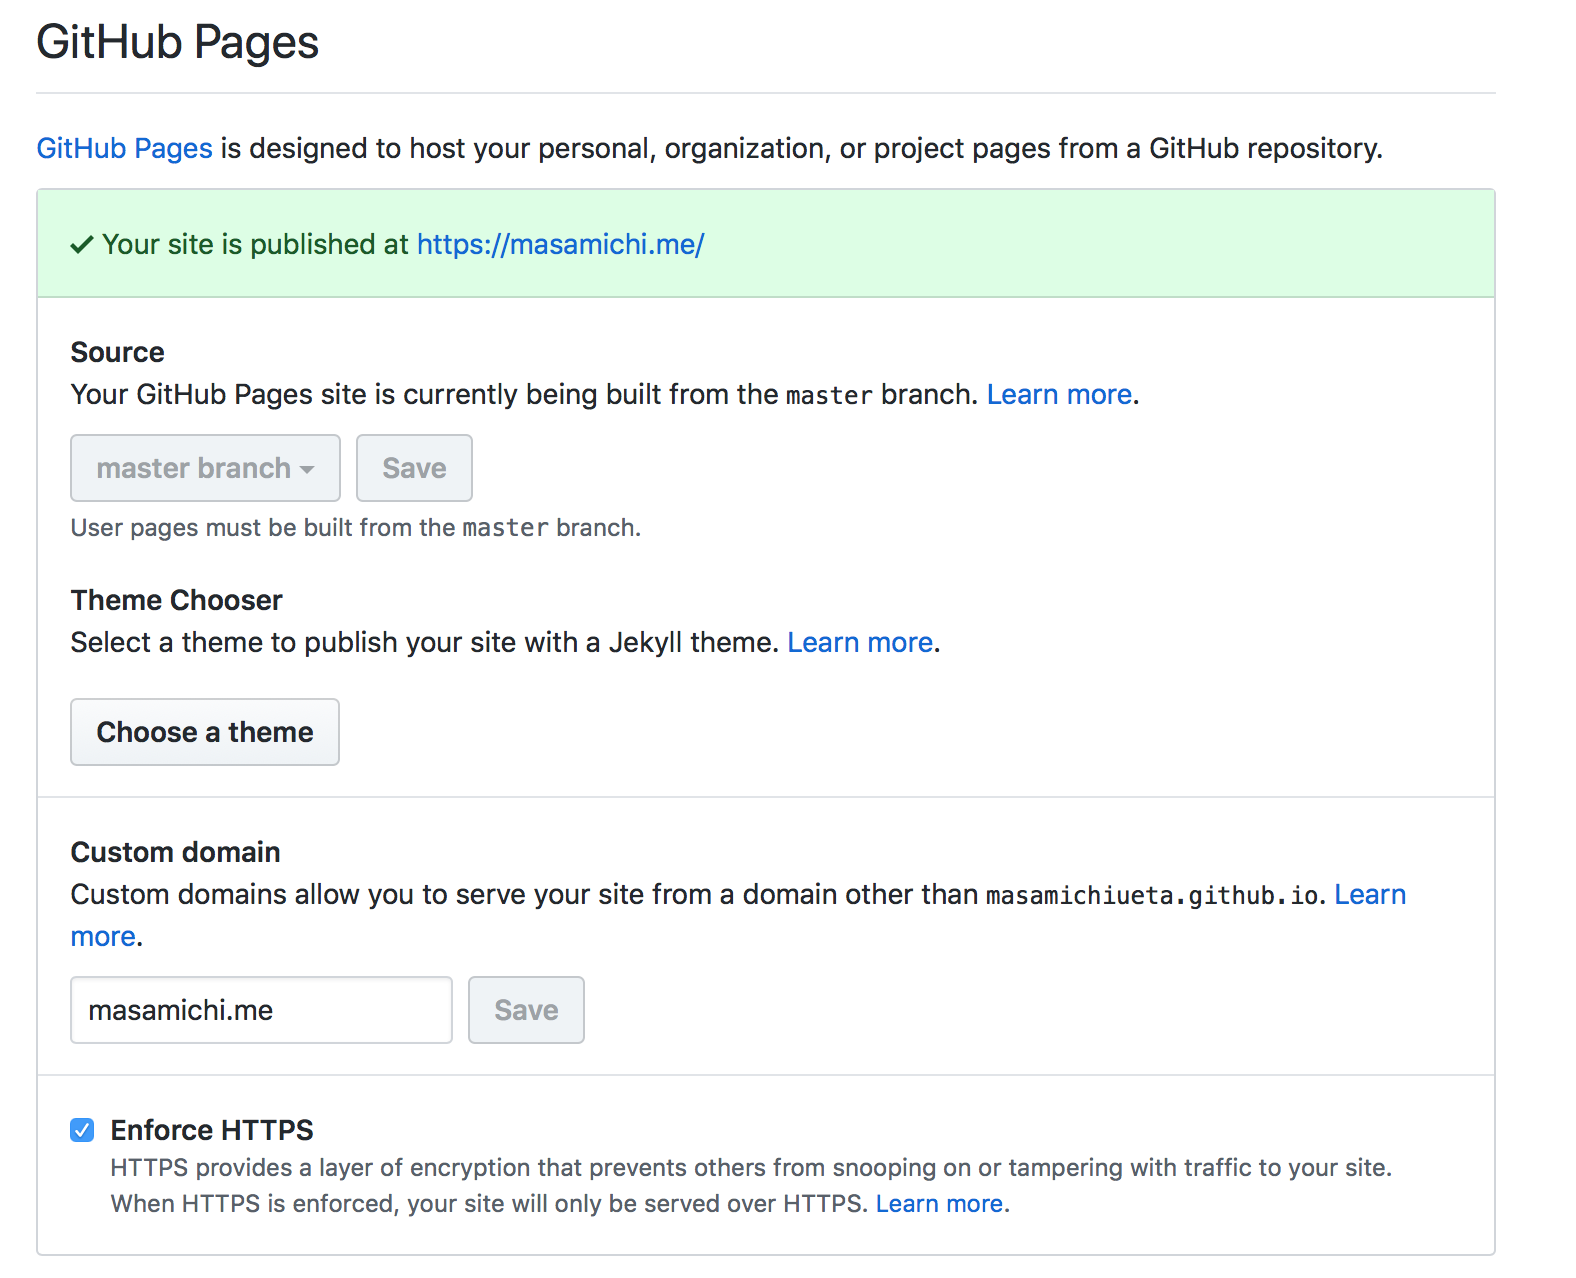 GitHub Pagesの設定